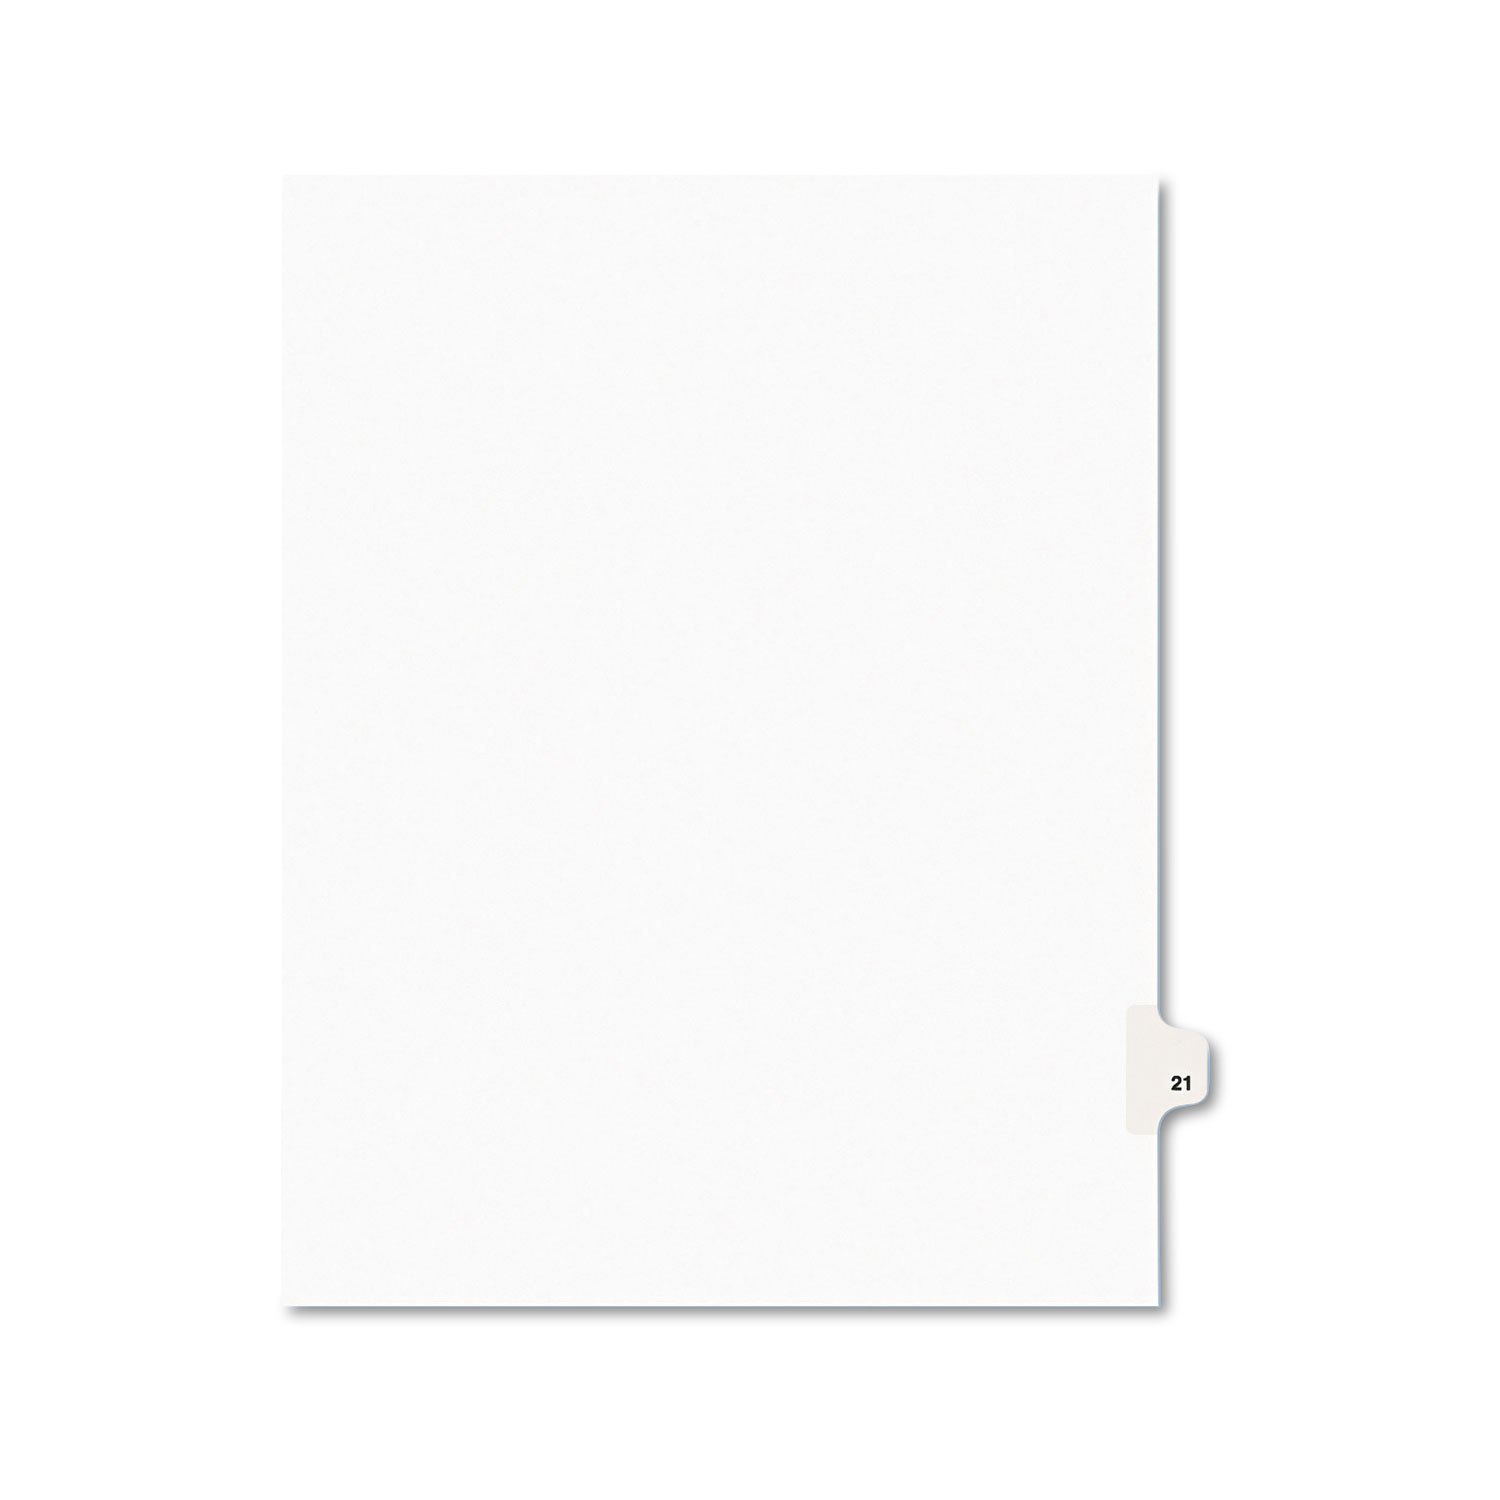 Avery 01021 Legal Exhibit Side Tab Divider, Title: 21, Letter Size, White 25/PK AVERY-DENNISON-KNM